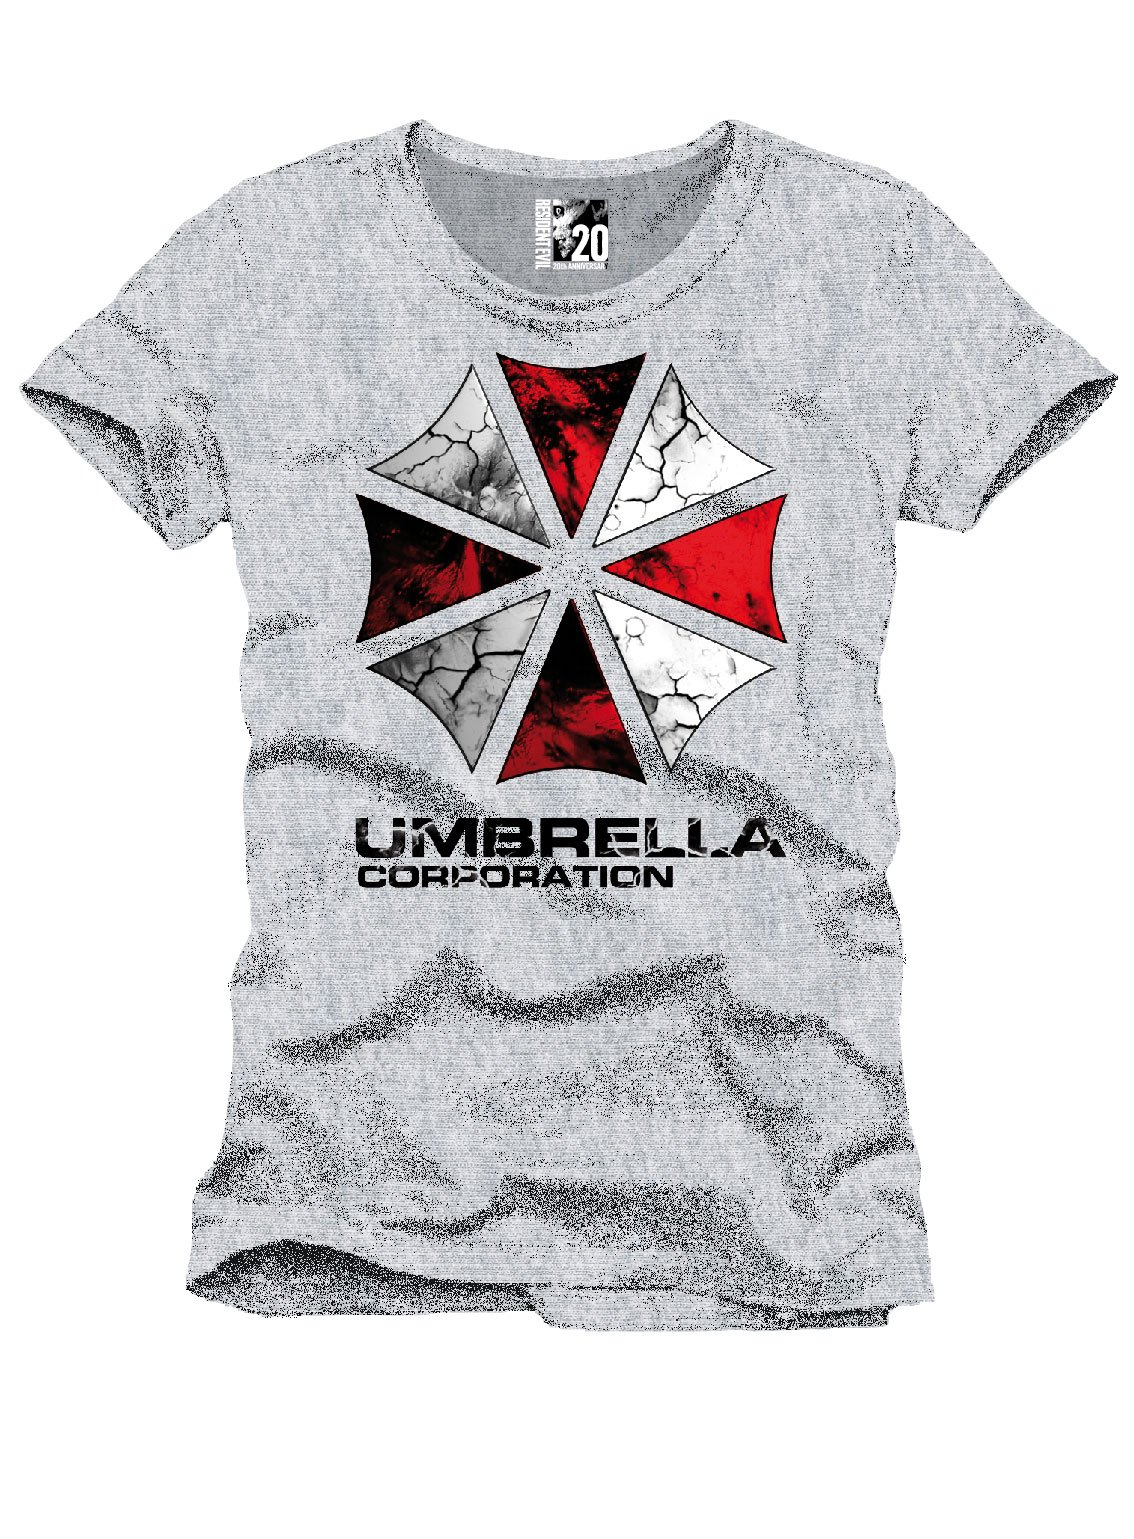 Resident Evil T-Shirt The Umbrella Corporation Size M